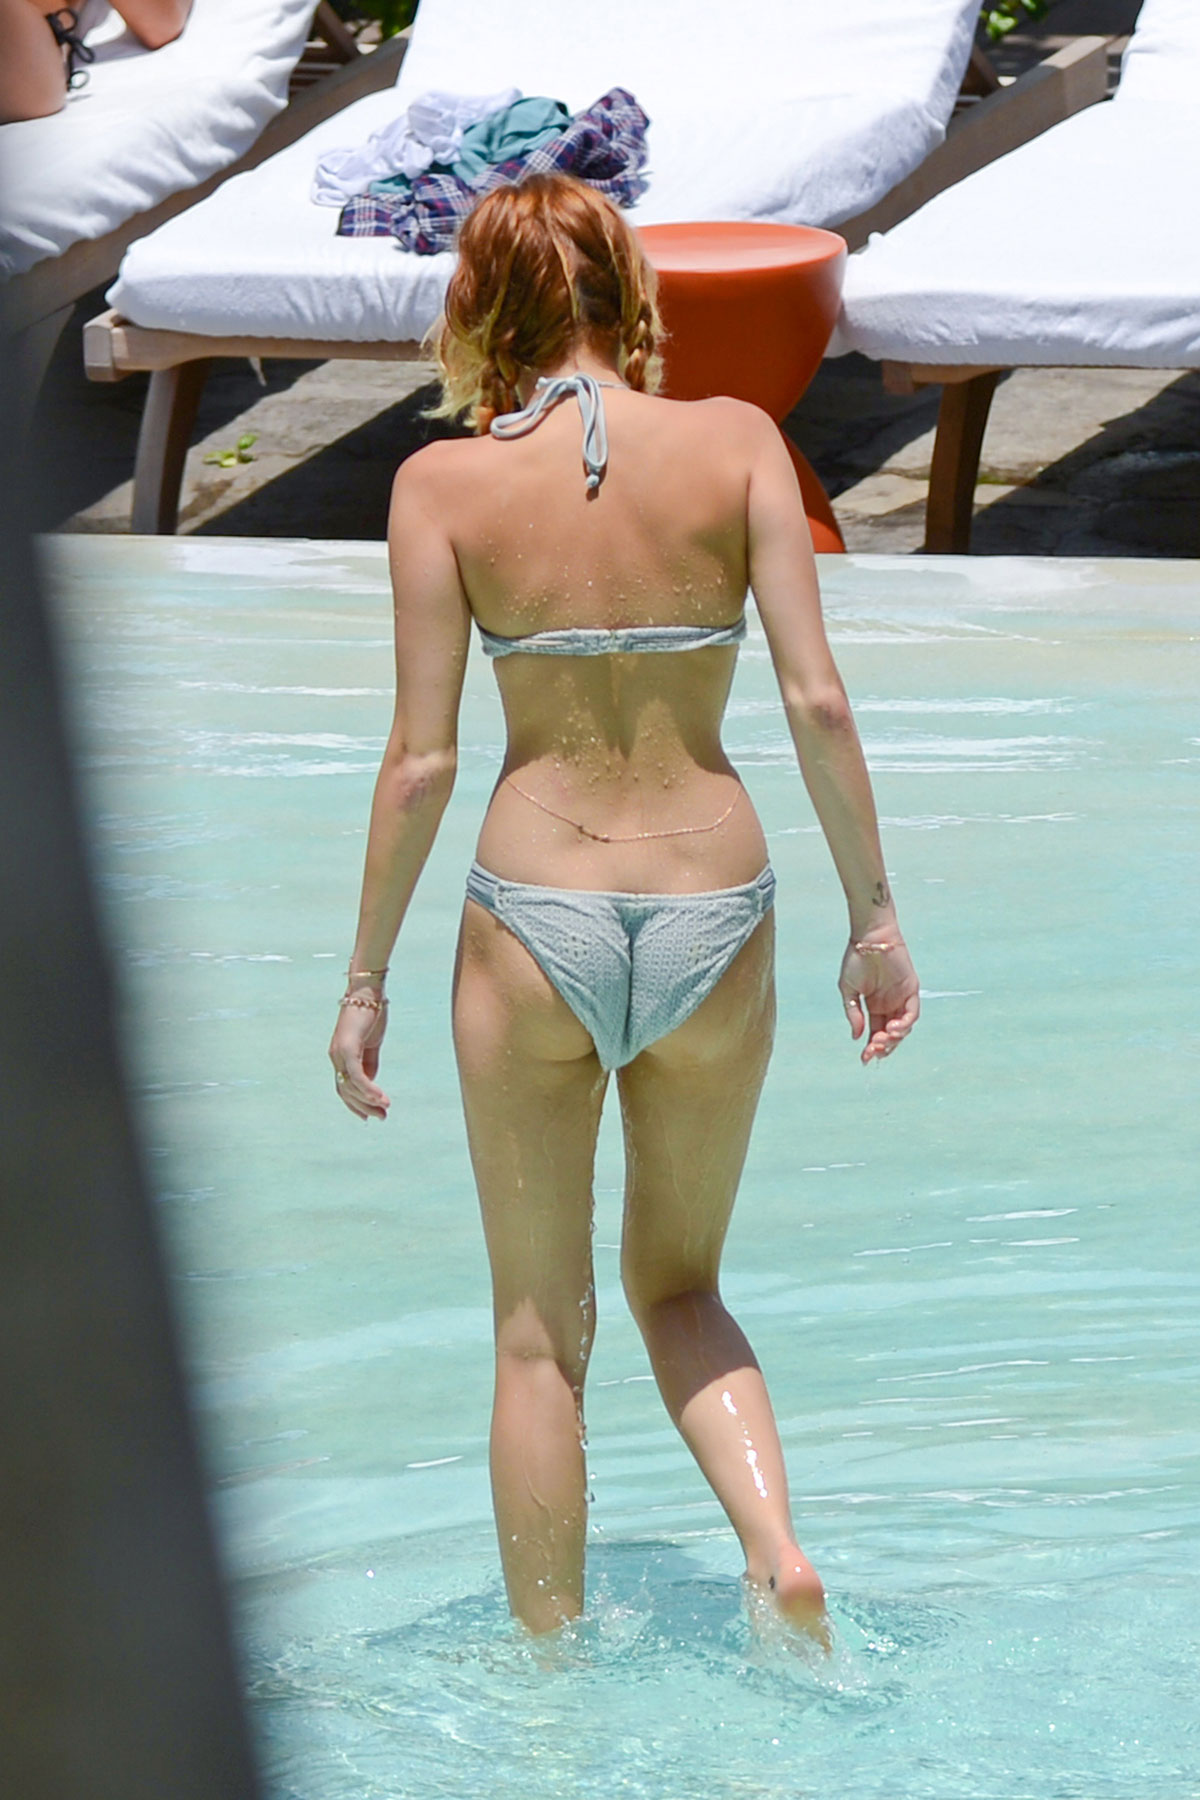 Completely share Miley cyrus bikini was and